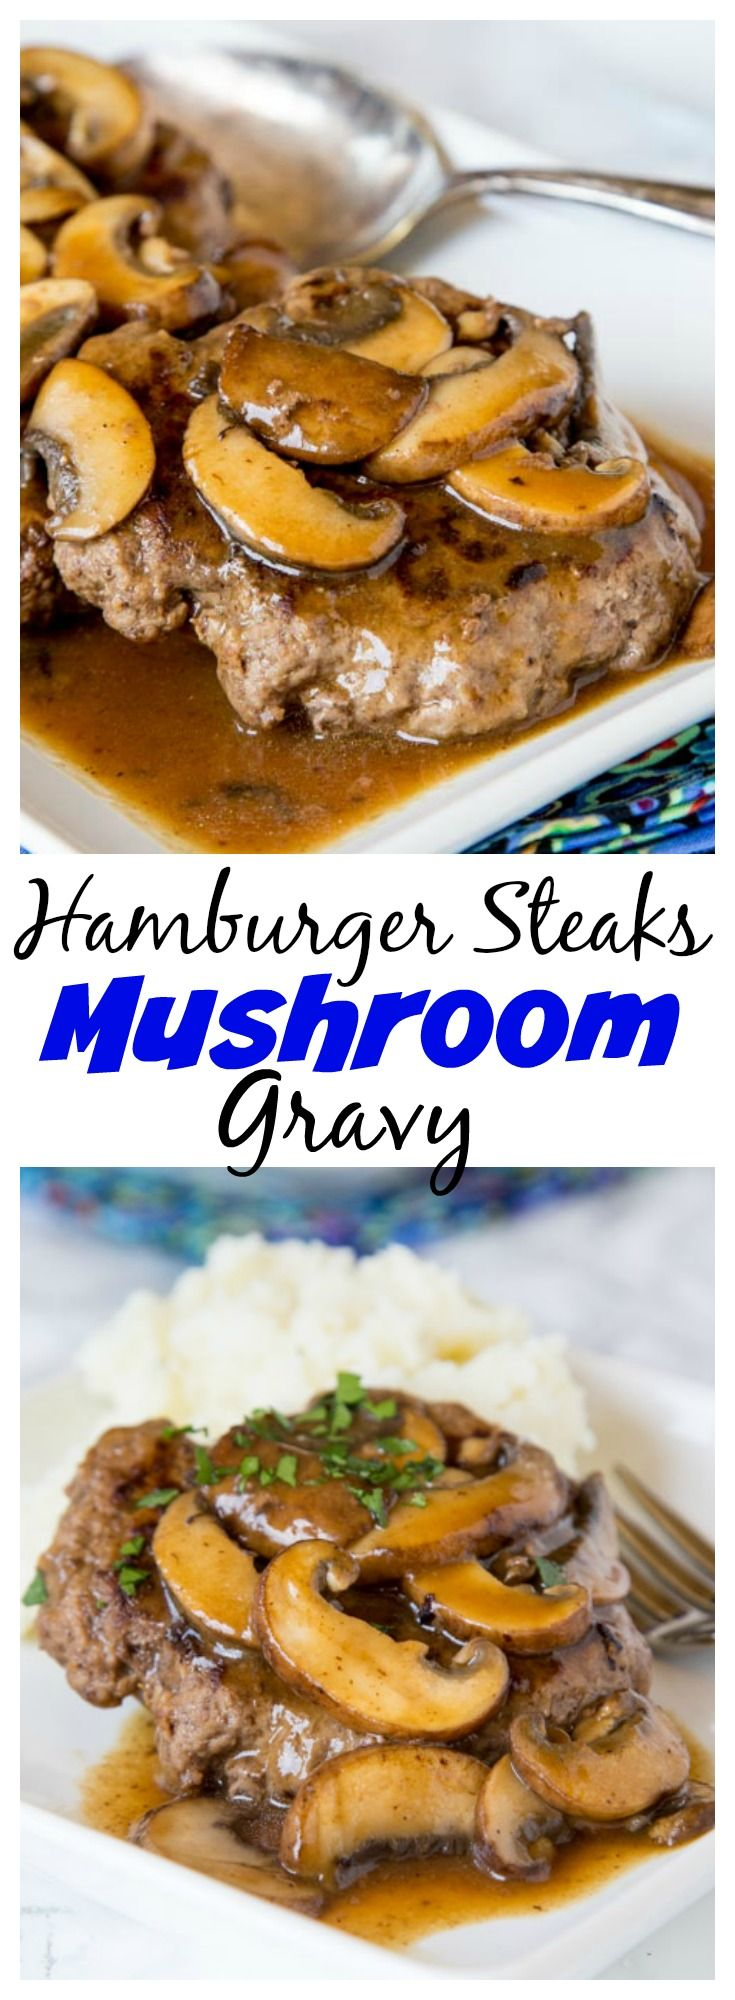 Hamburger Steaks with Mushroom Gravy -easy comfort food that won't break the bank! Rich mushroom gravy over tender hamburger steaks is a great weeknight dinner.